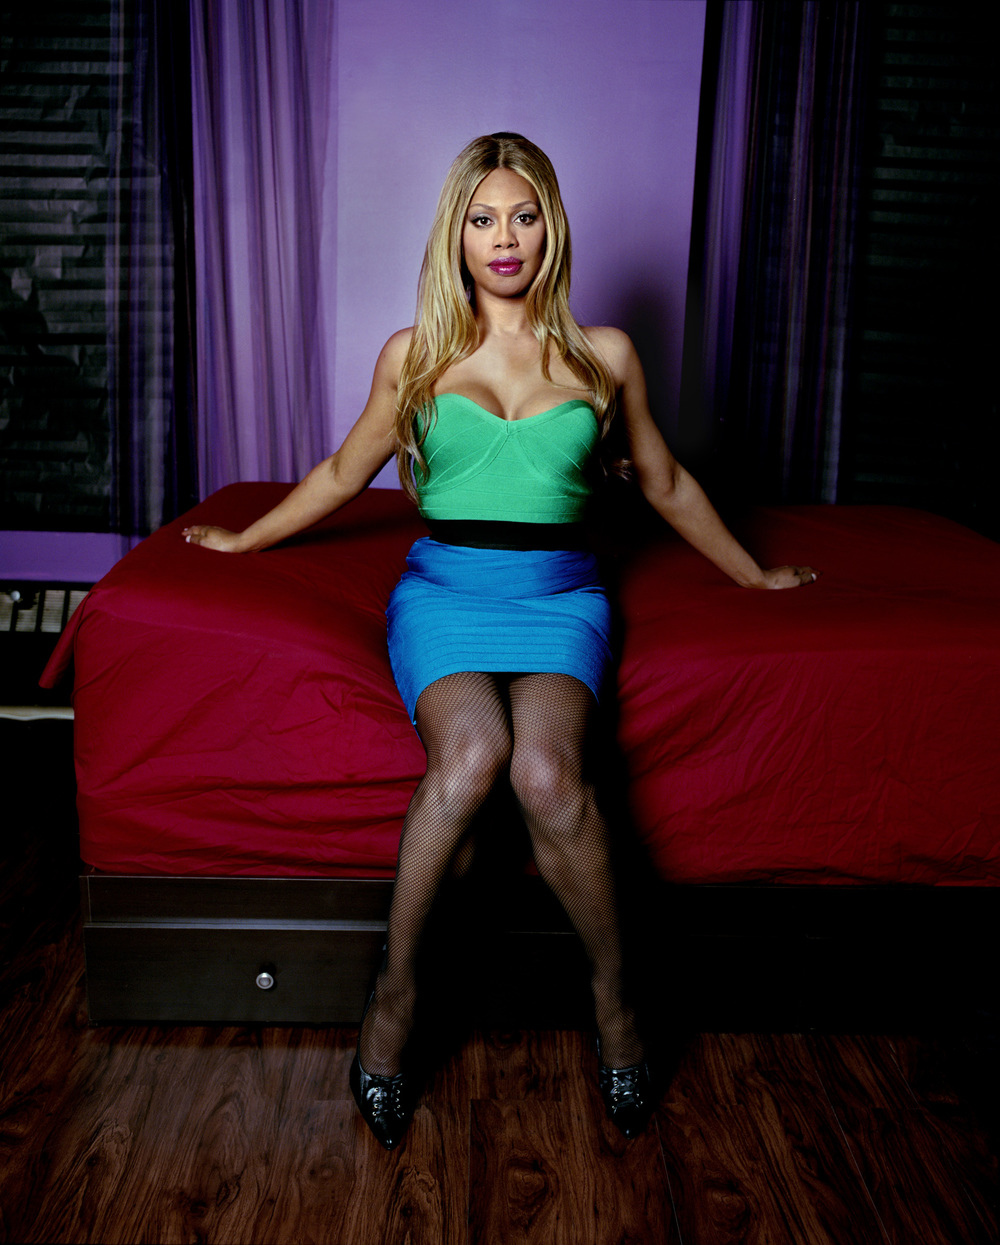 Laverne Cox in her bedroom, New York City, 2014